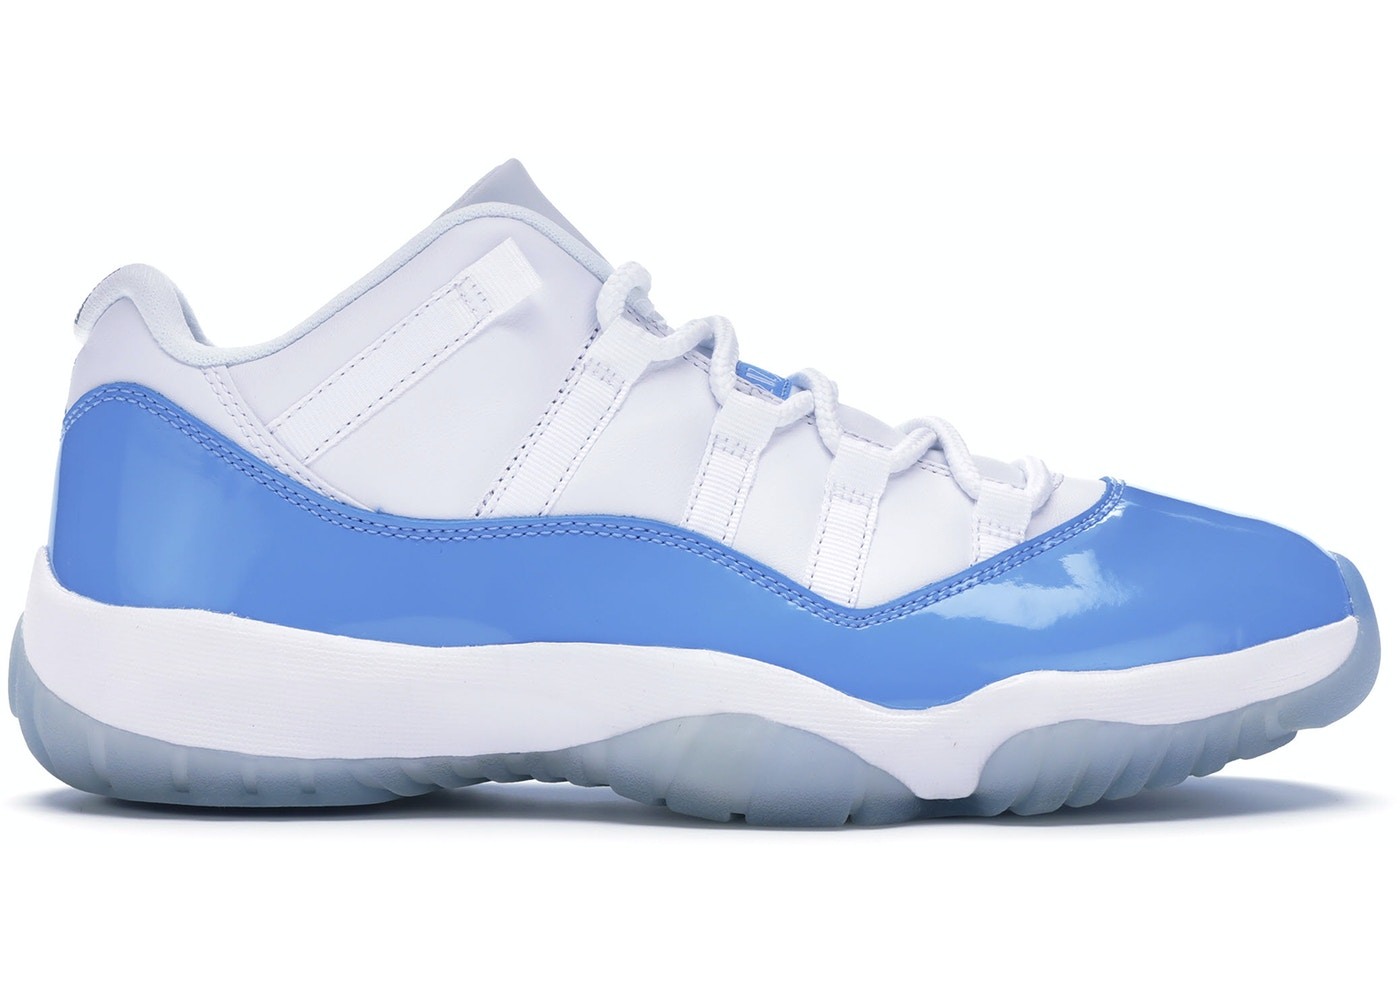 sale retailer 6a0f3 f0058 Jordan 11 Retro Low University Blue (2017) - 528895-106